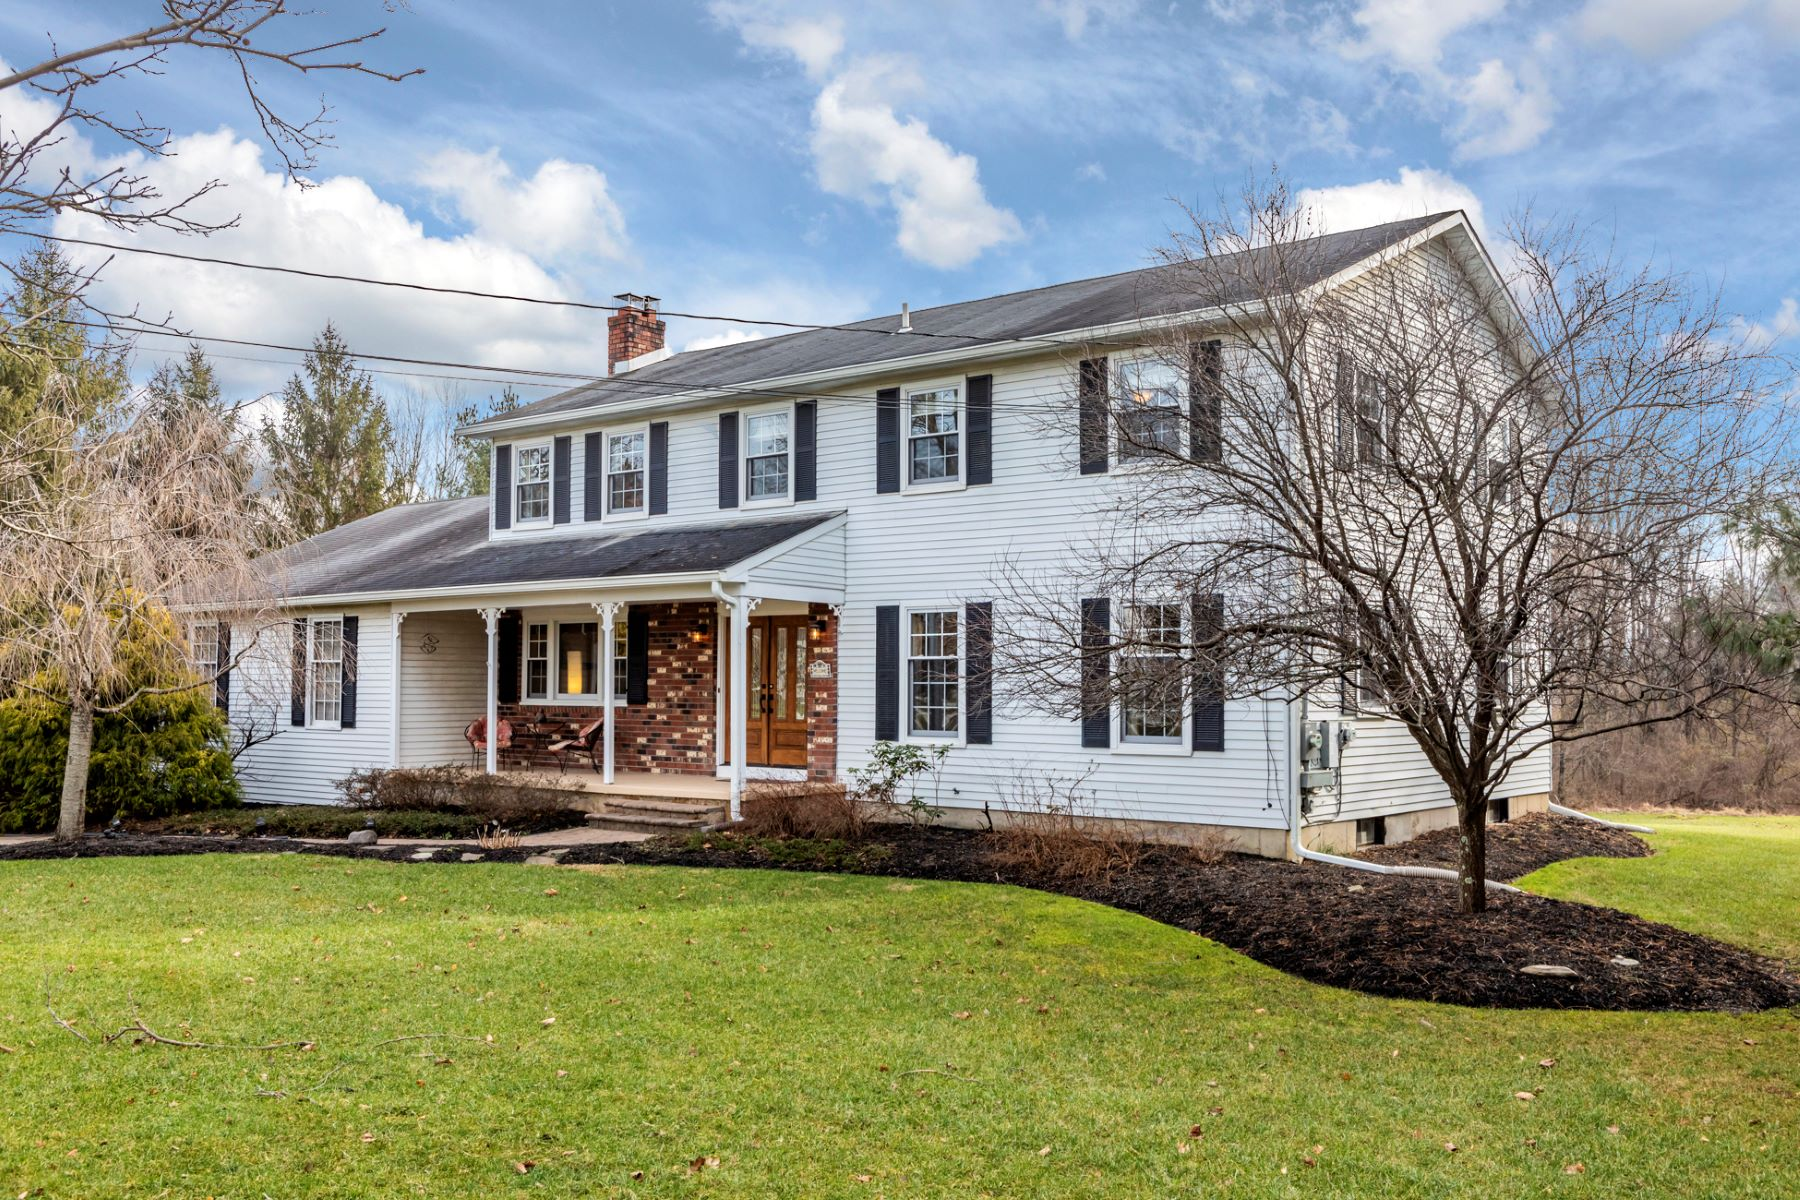 Single Family Home for Sale at Park-Like Setting for Sparkling Lawrence Colonial 19 Van Kirk Road, Princeton, New Jersey 08540 United States